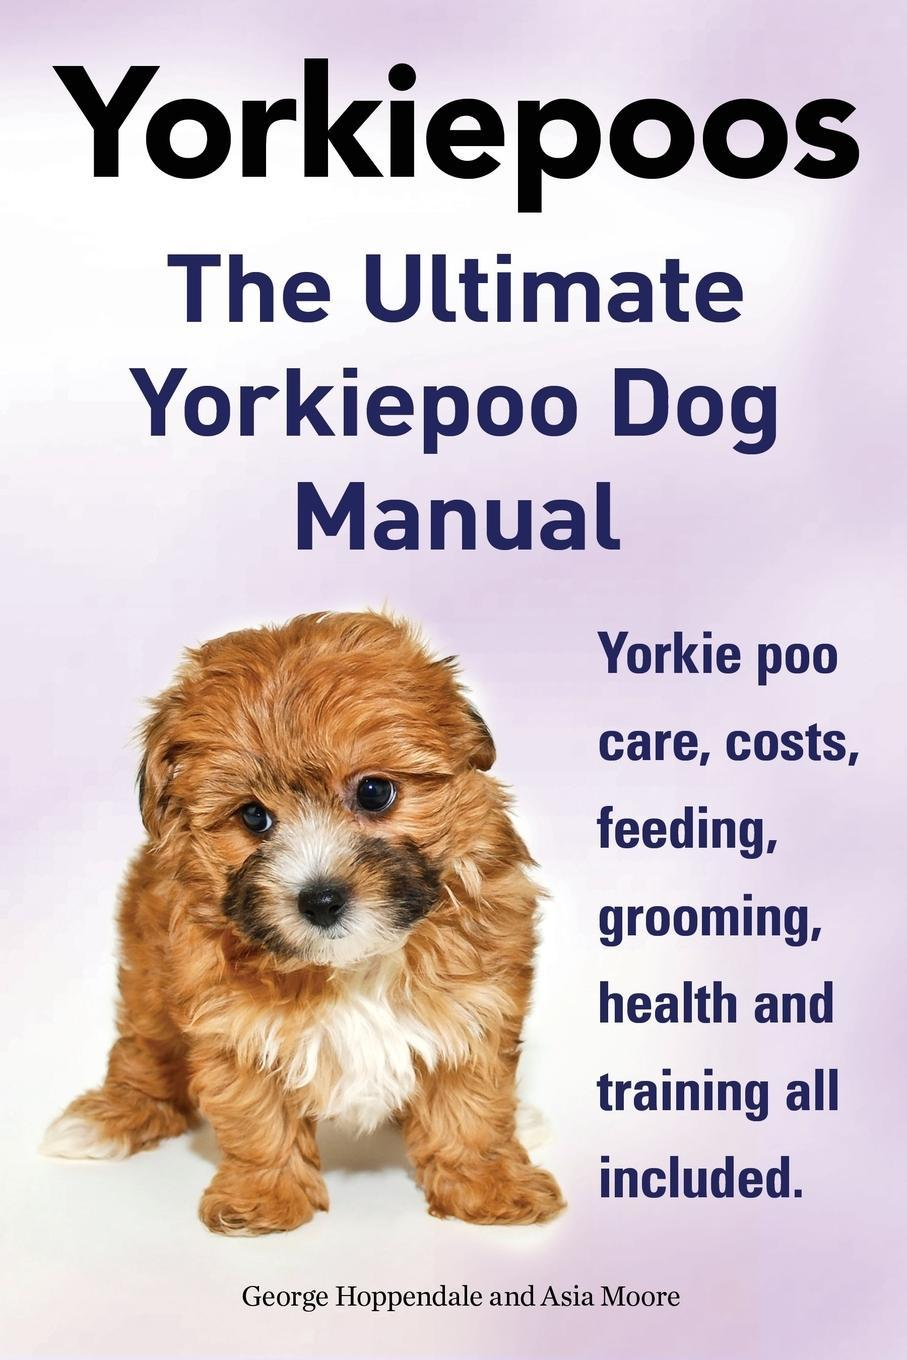 Yorkie Poos. the Ultimate Yorkie Poo Dog Manual. Yorkiepoo C ... 9781910410028